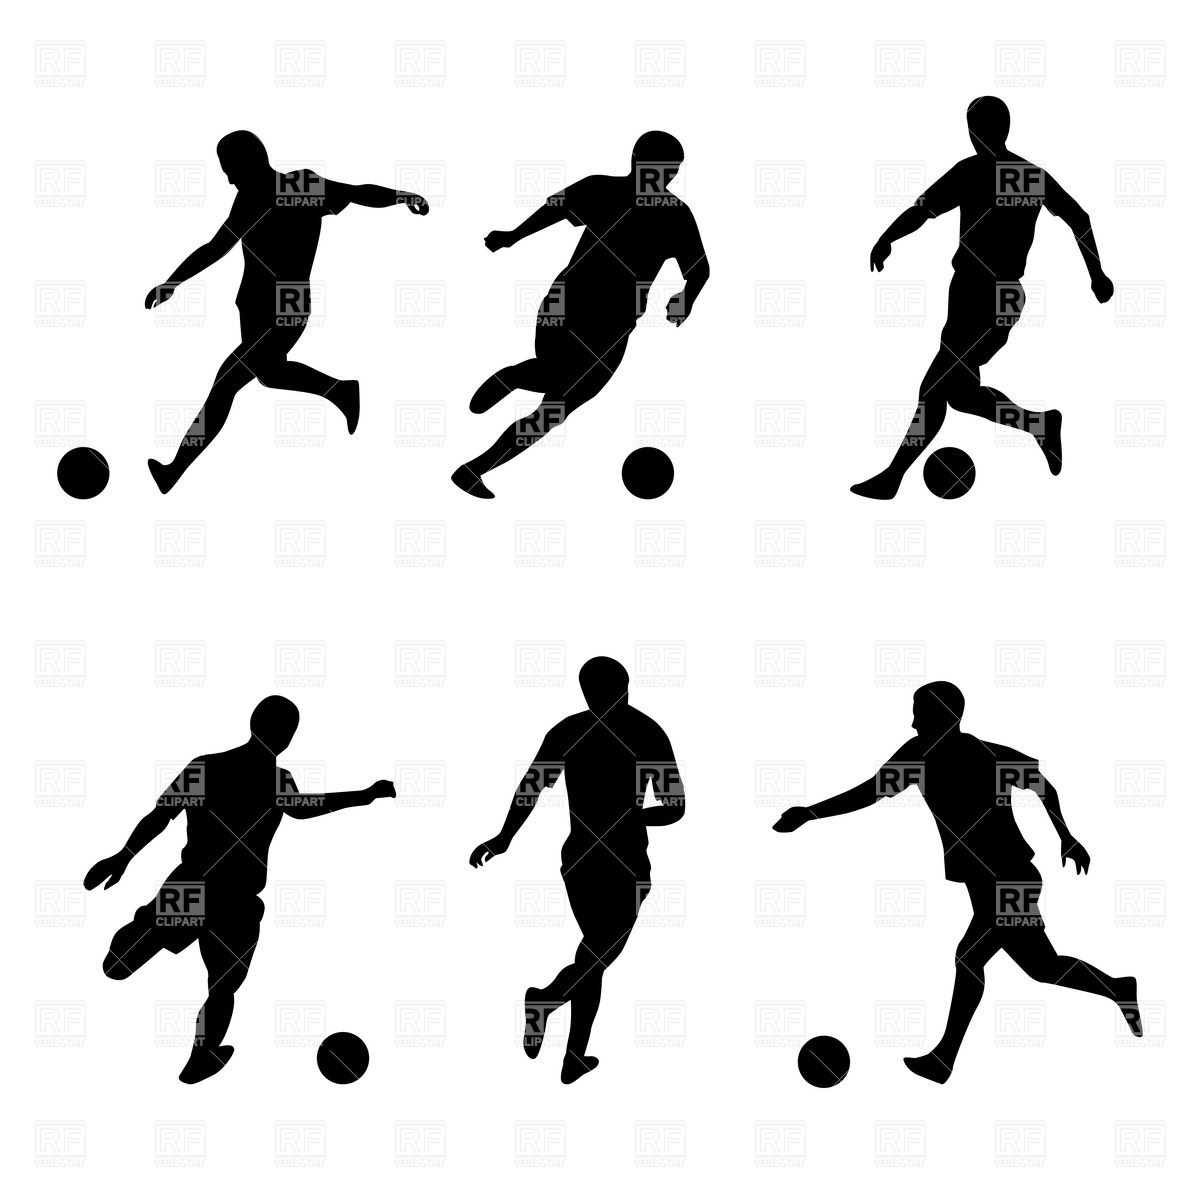 7 Soccer Player Silhouette Vector Images